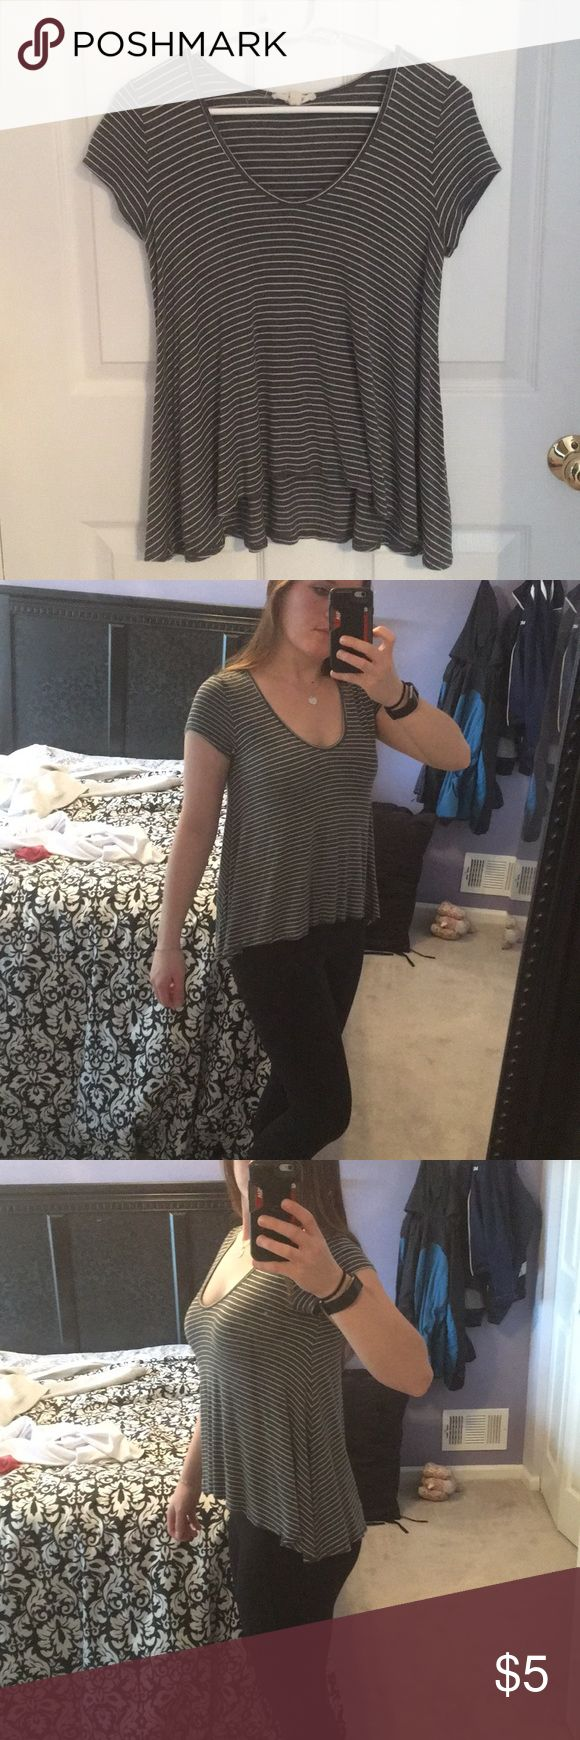 Striped top Flowy top with scoop neck! Very soft material Marshalls Tops Tees - Short Sleeve